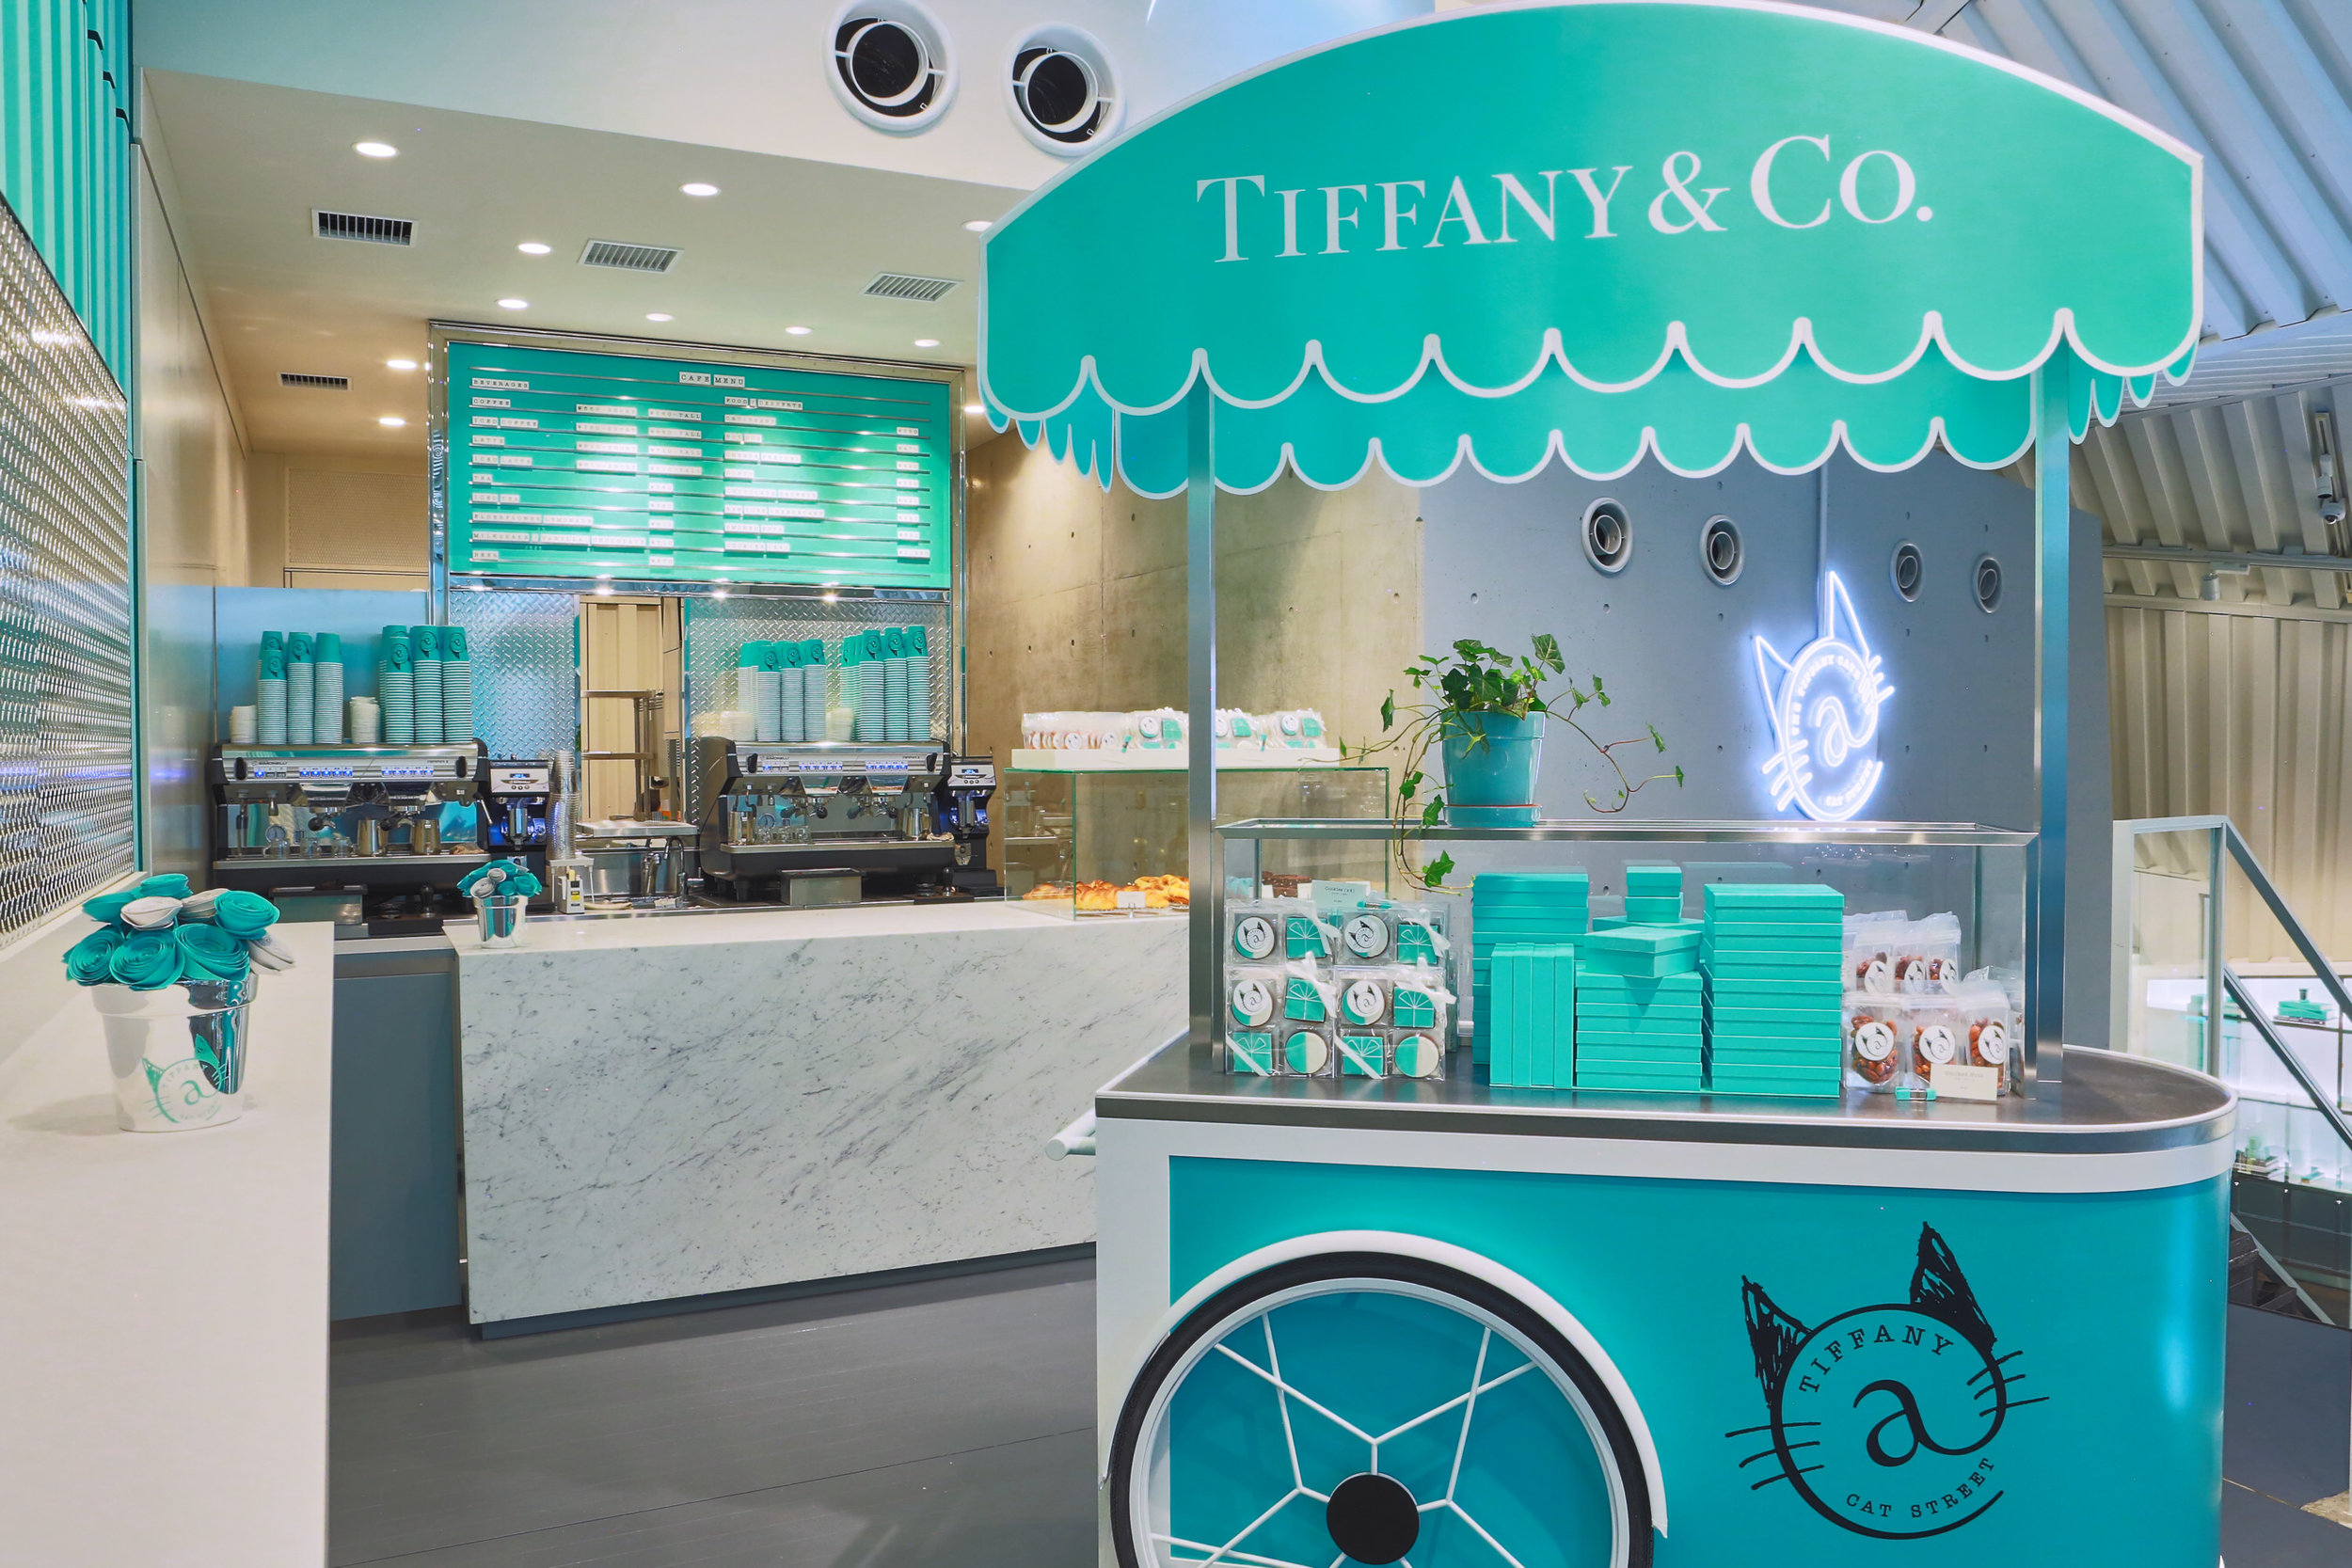 The First Tiffany Cafe in Japan